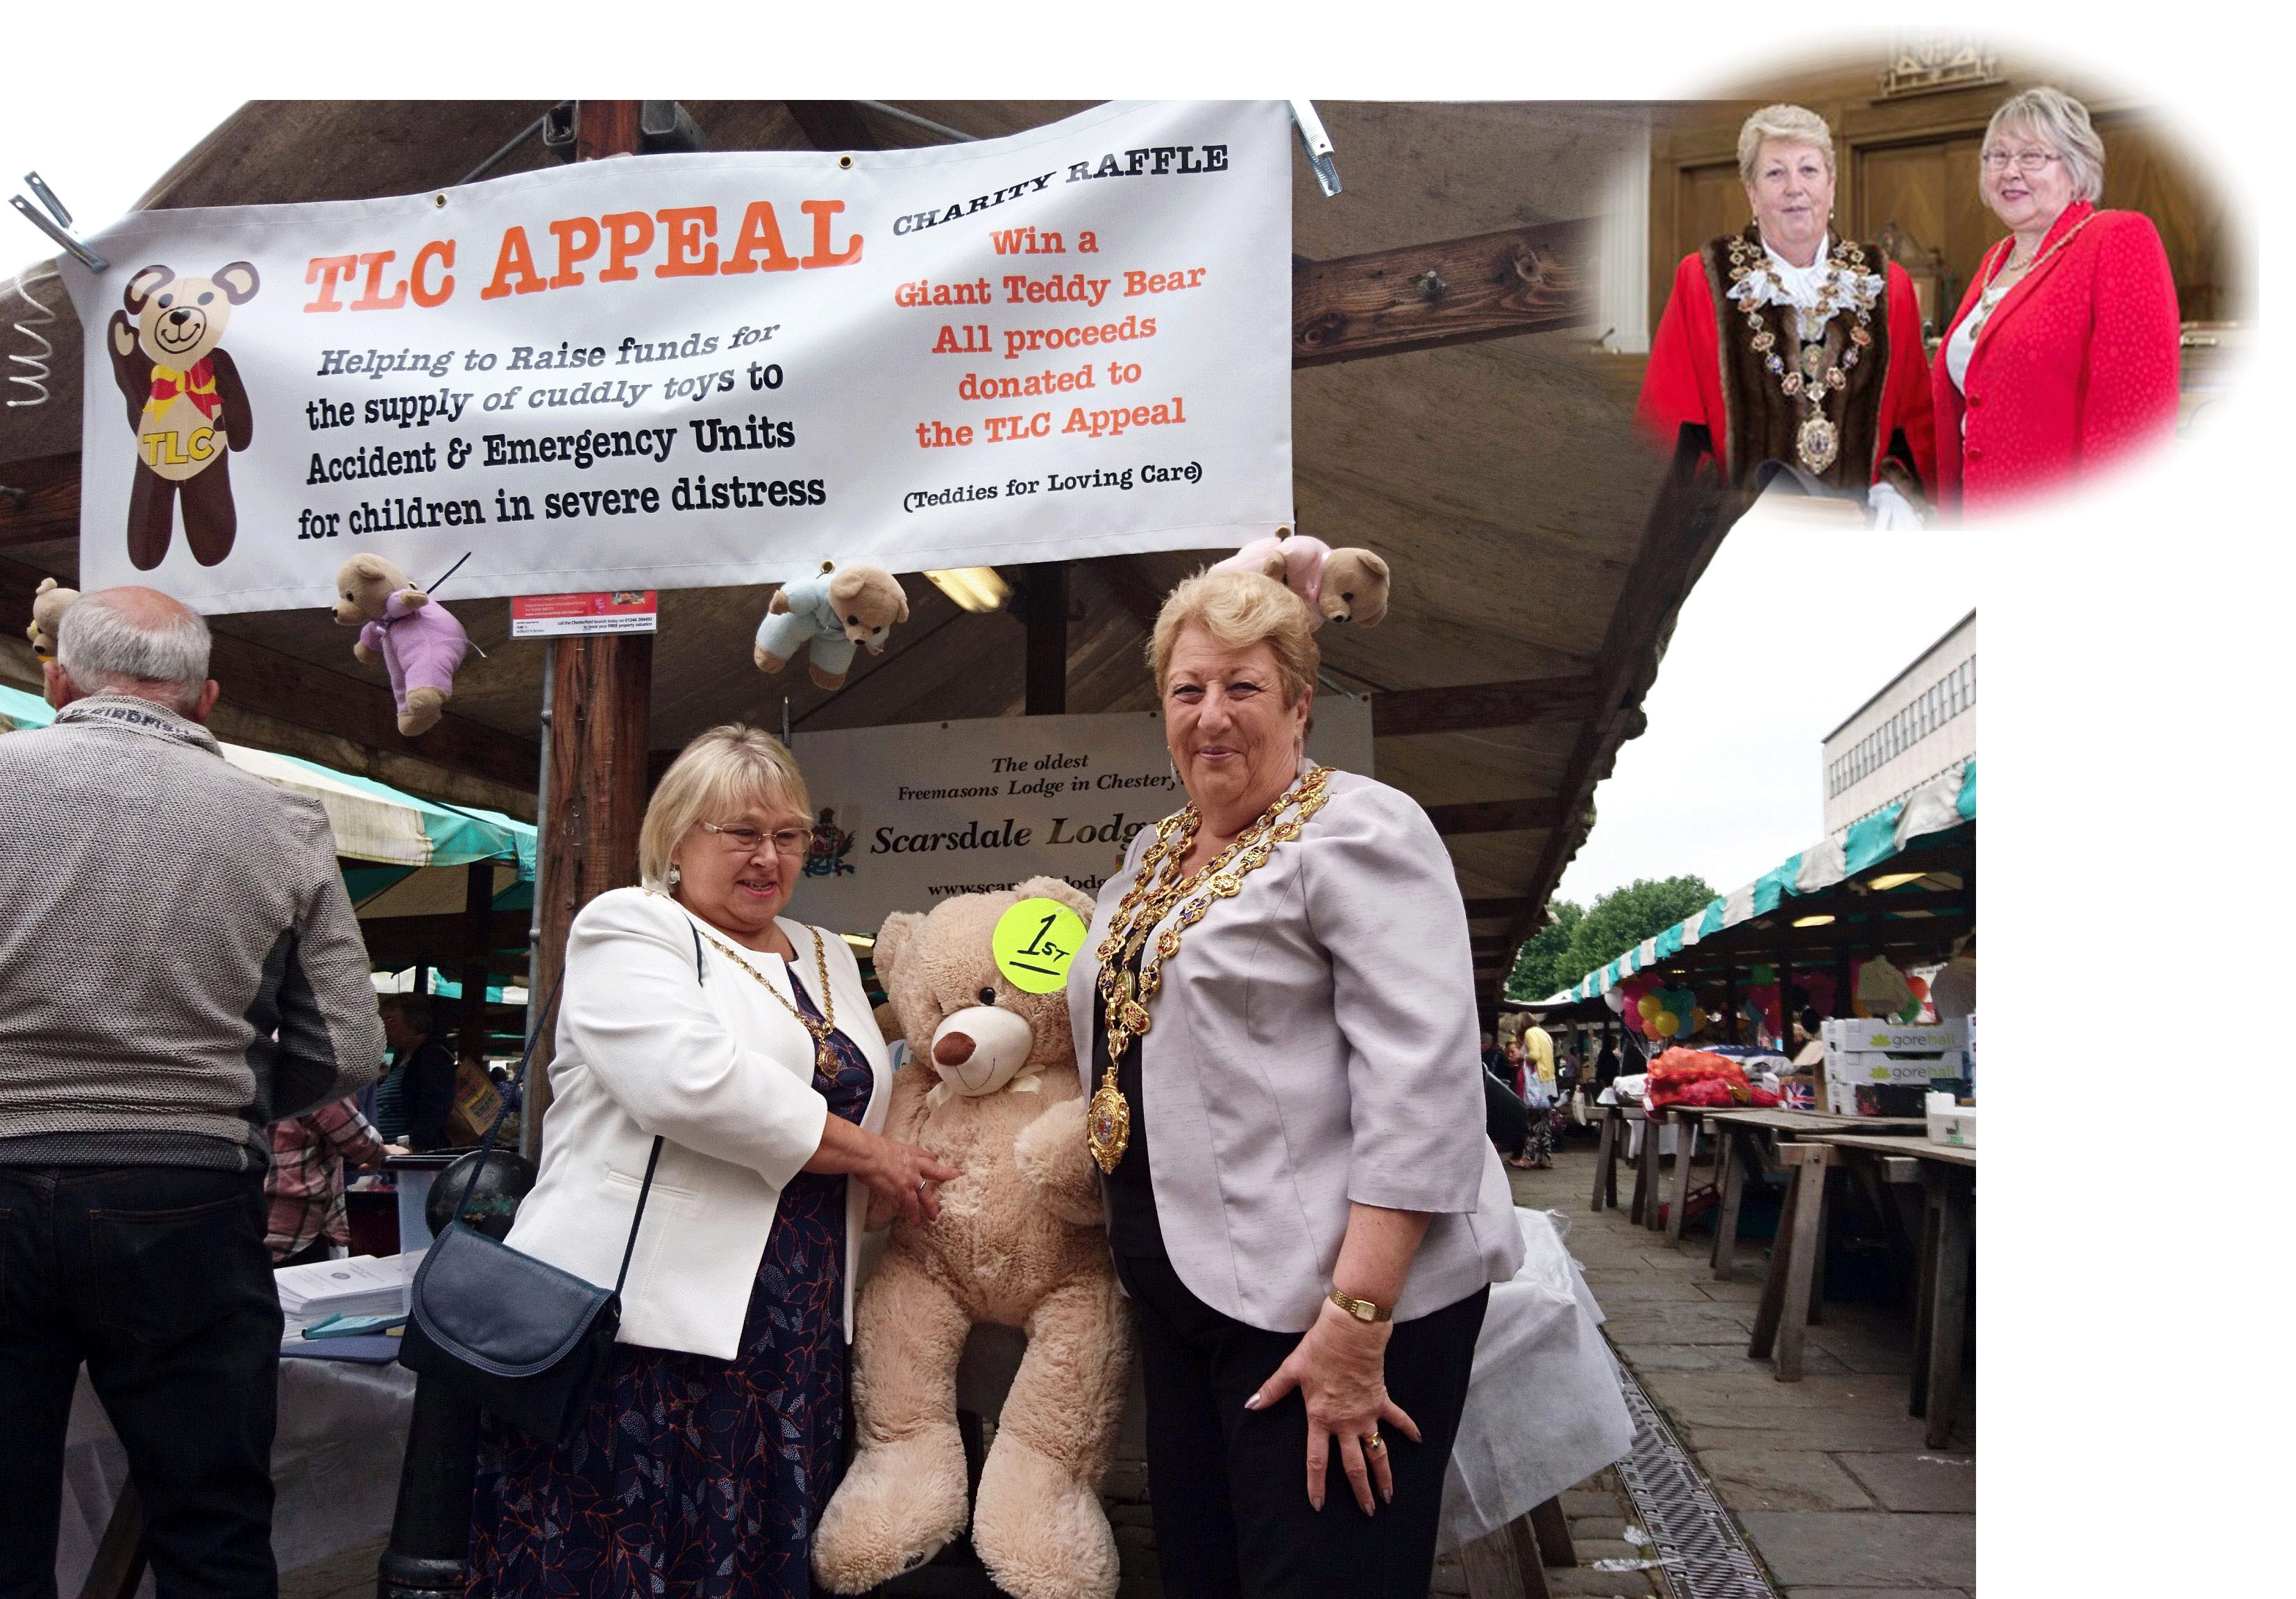 Chesterfield Medieval Market - Scarsdale Lodge 681 - Teddies For Loving Care